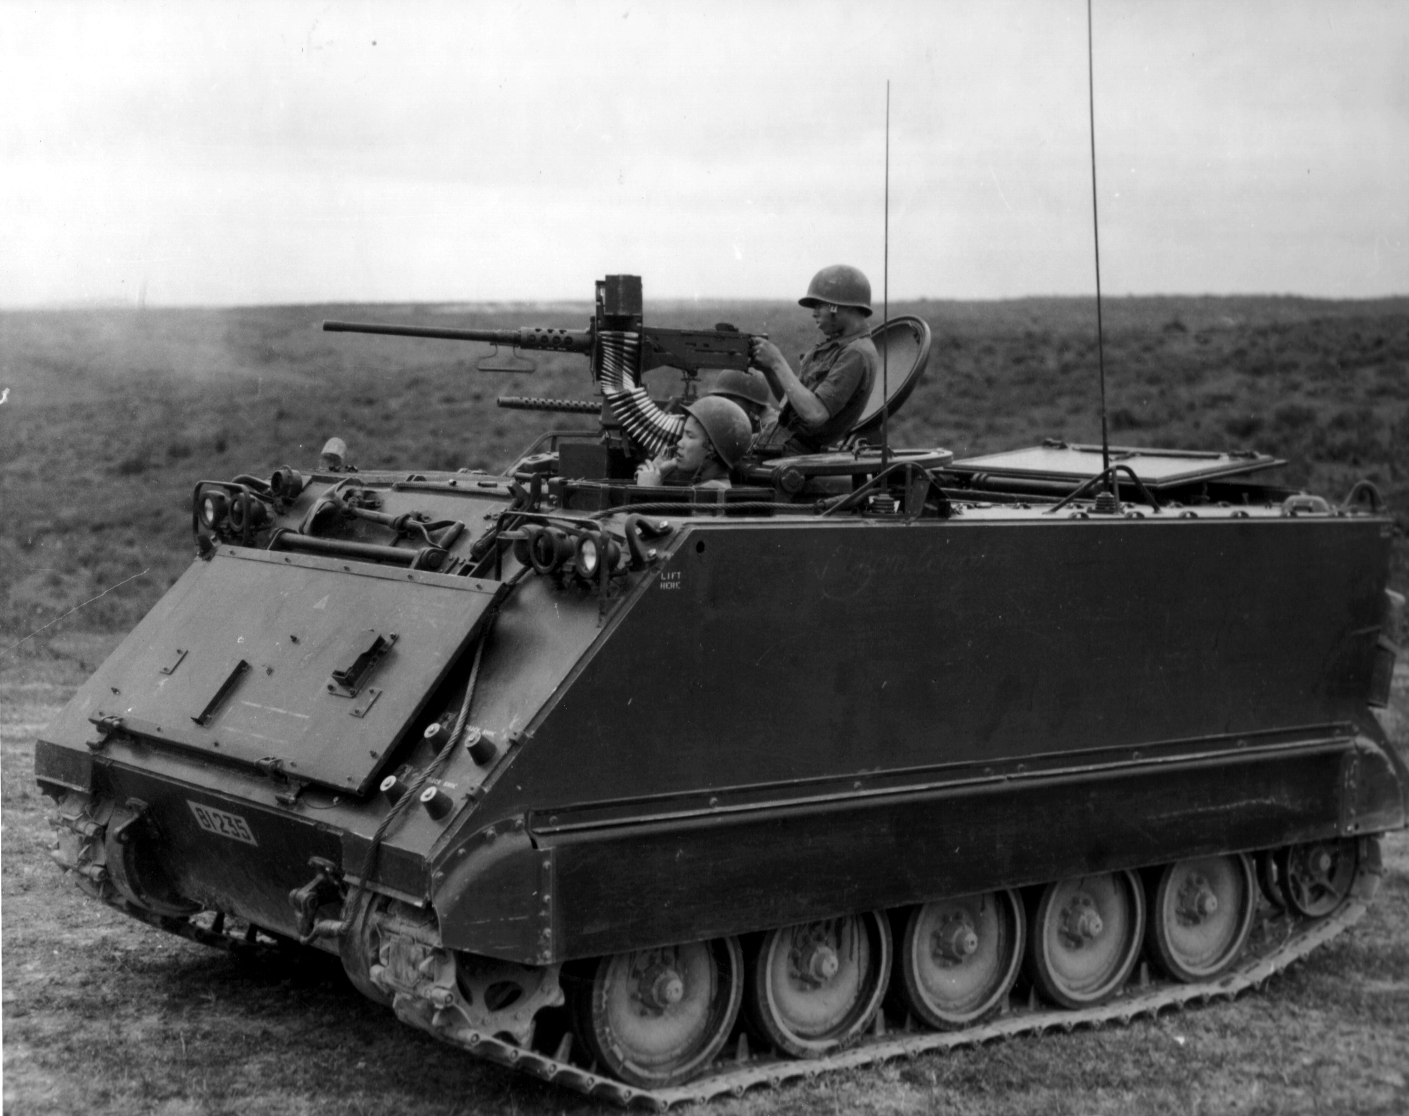 The M113, one of the most common tracked APCs, on duty during the Vietnam War.